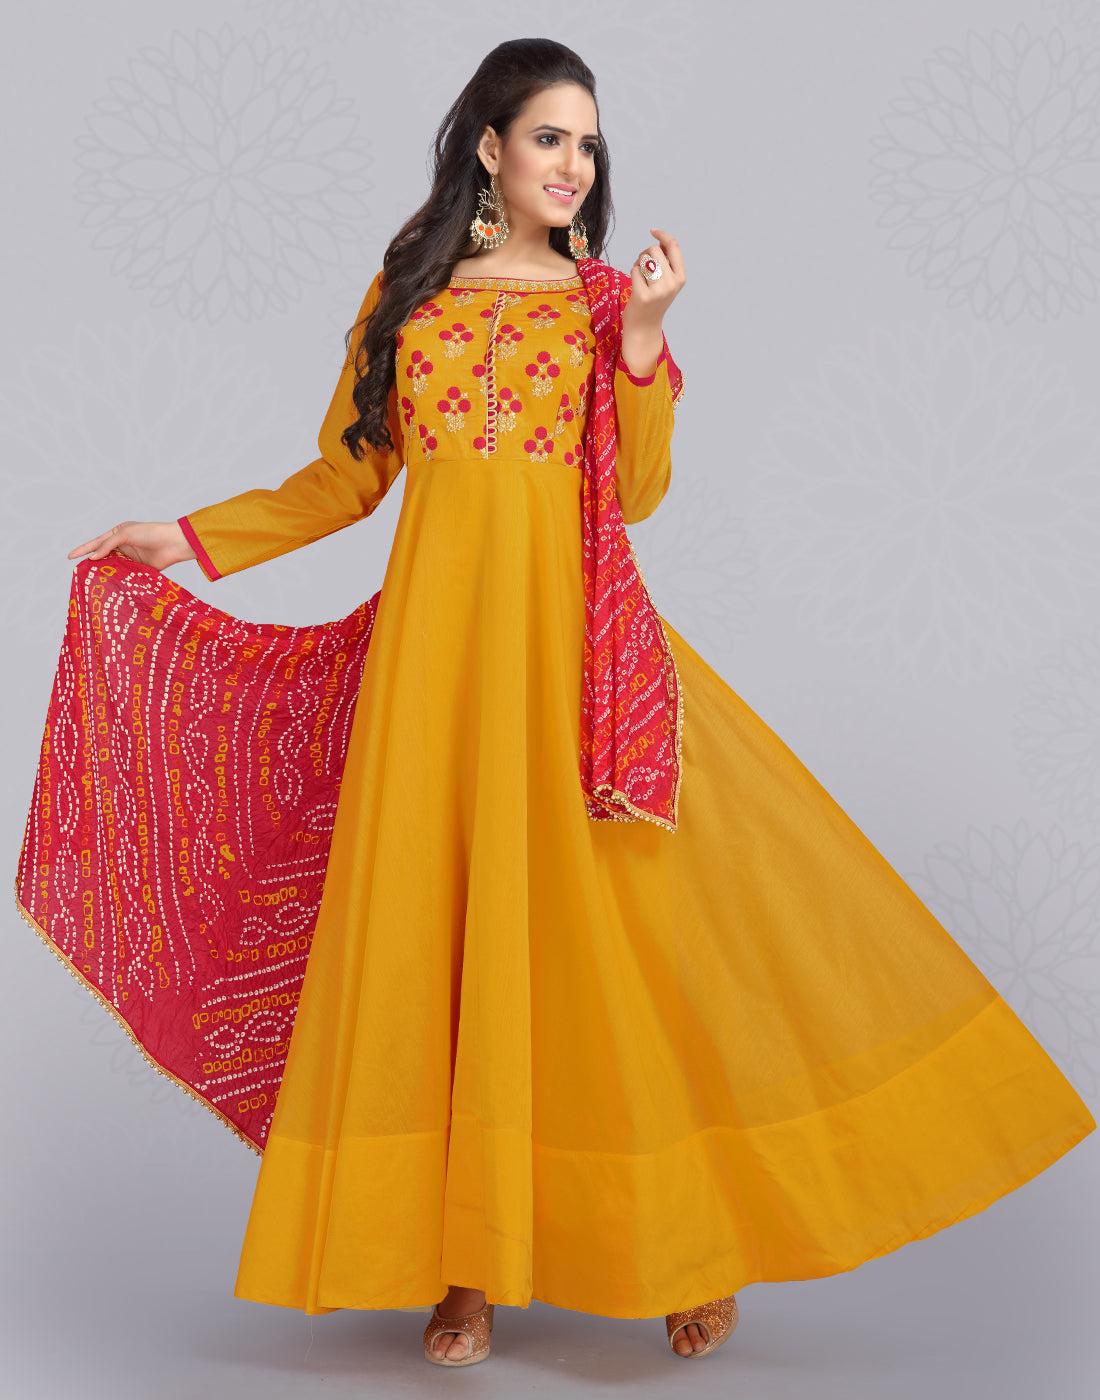 Mustard 'N' Red Silk Cotton Anarkali Salwar Suit